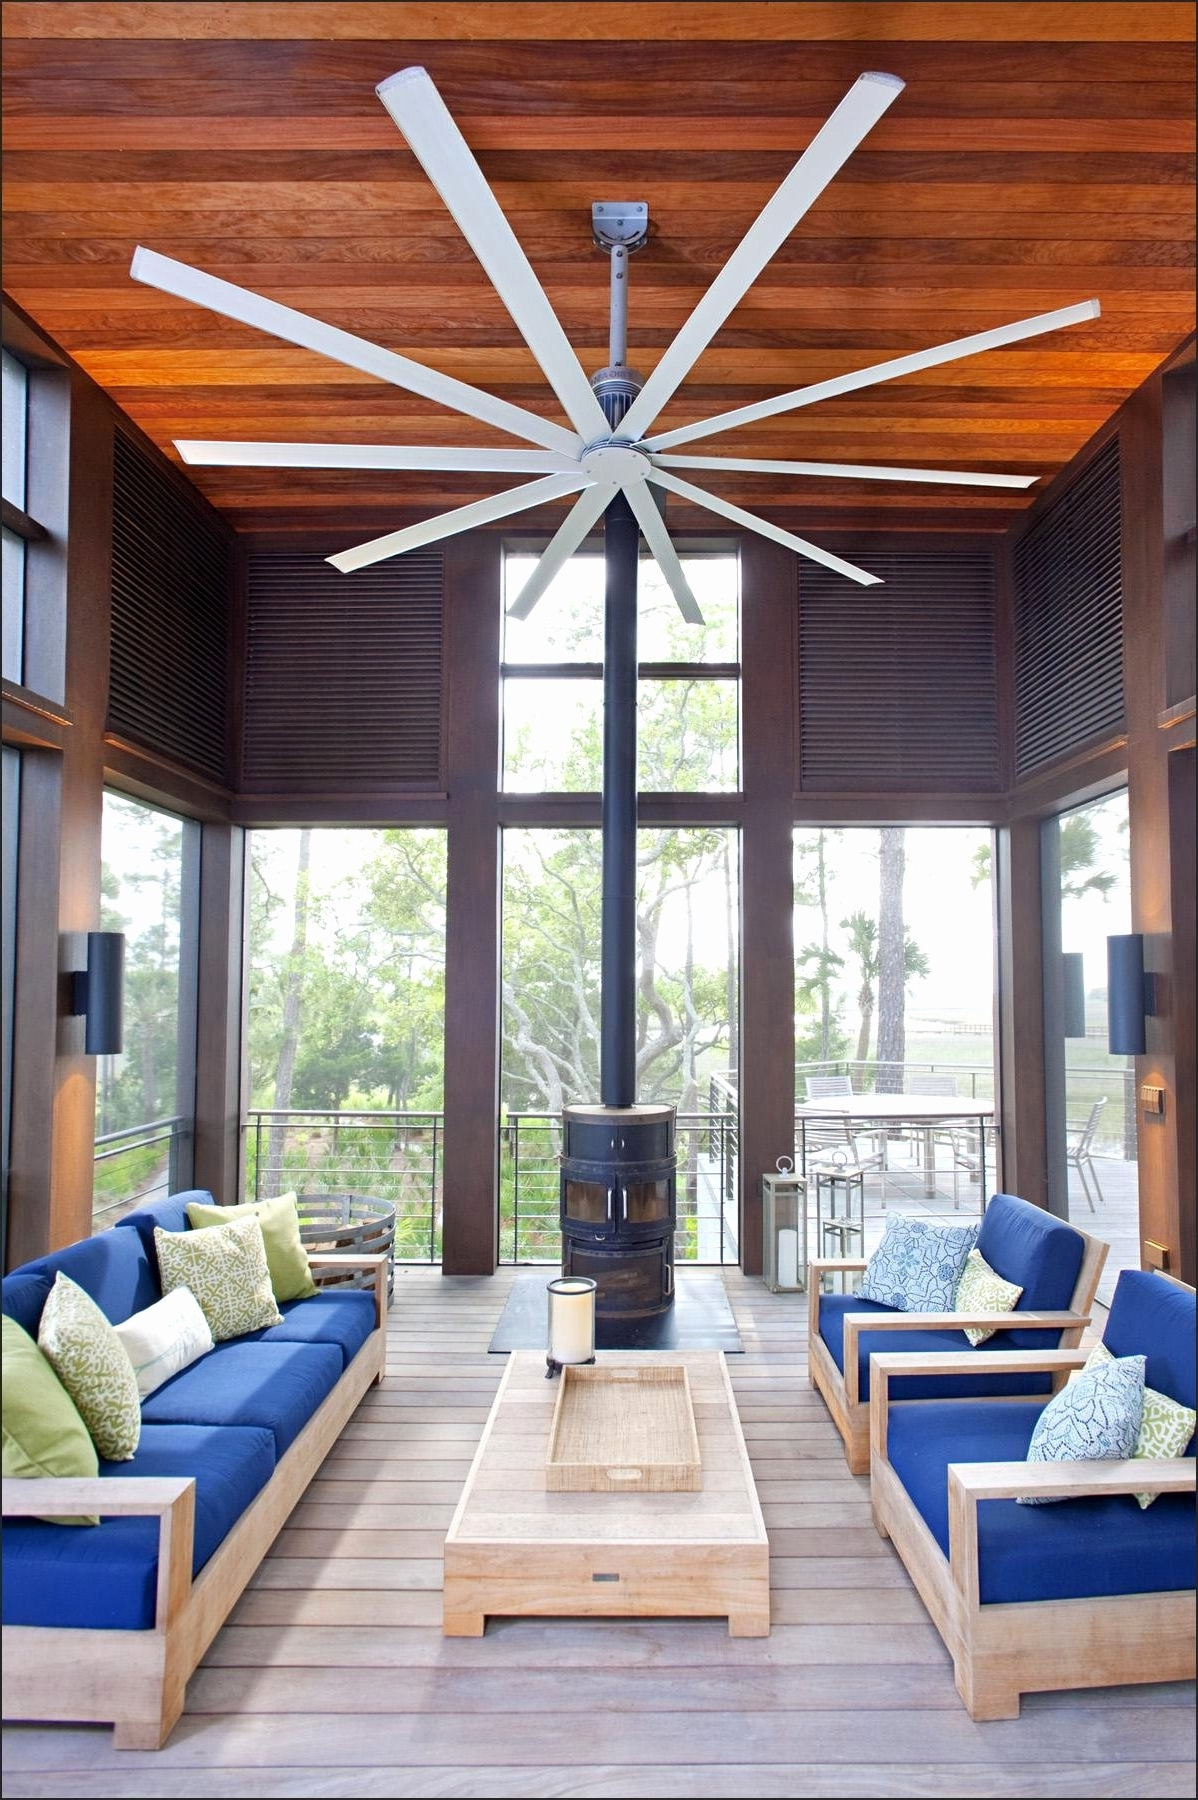 Water Misters For Patios Best Of 50 Awesome Outdoor Ceiling Fans With Regard To Recent Outdoor Ceiling Fans With Misters (View 18 of 20)